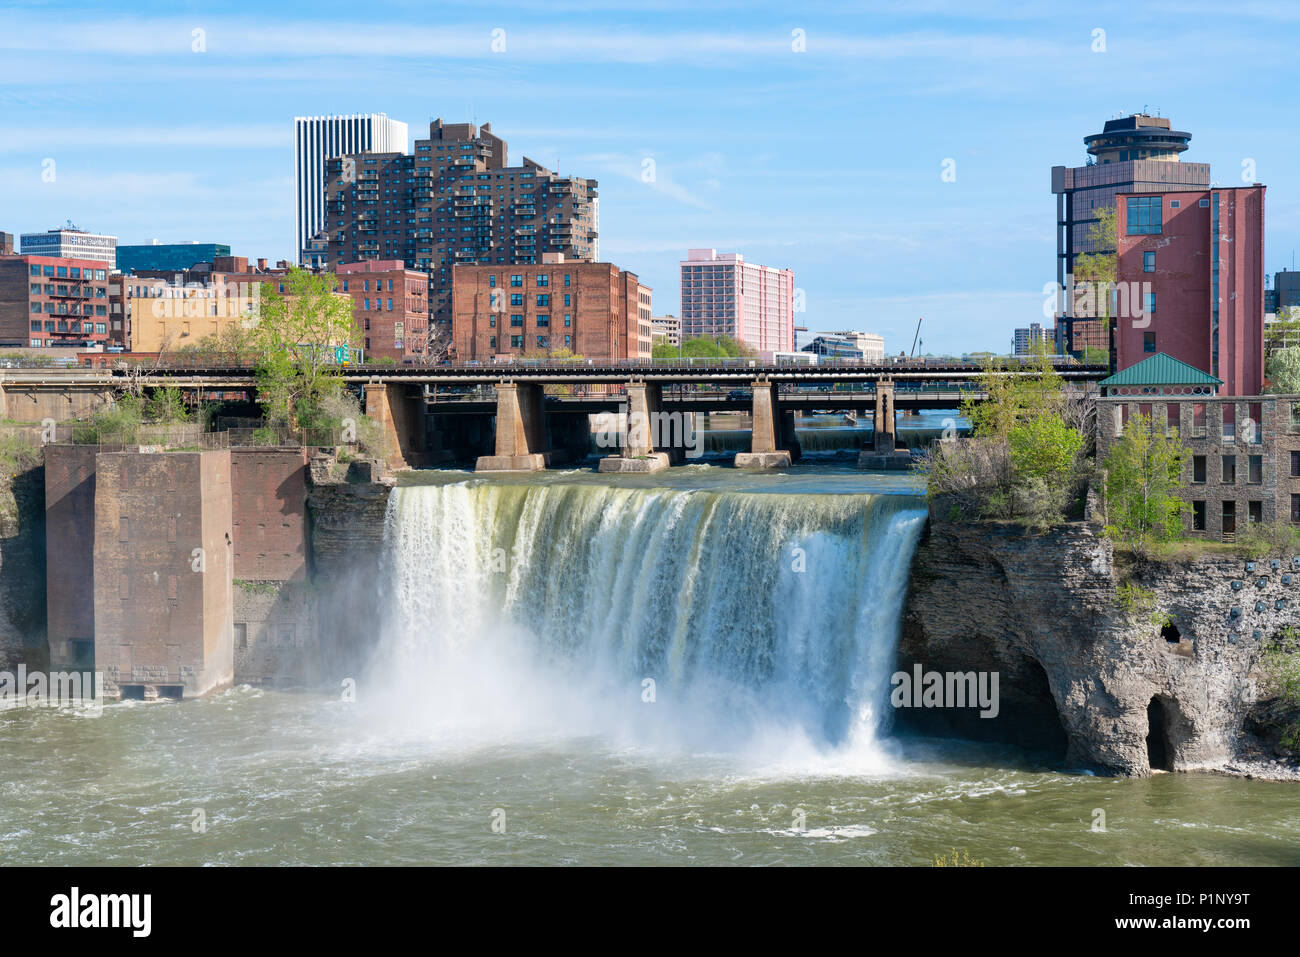 rochester ny may 14 2018 skyline of rochester new york at the